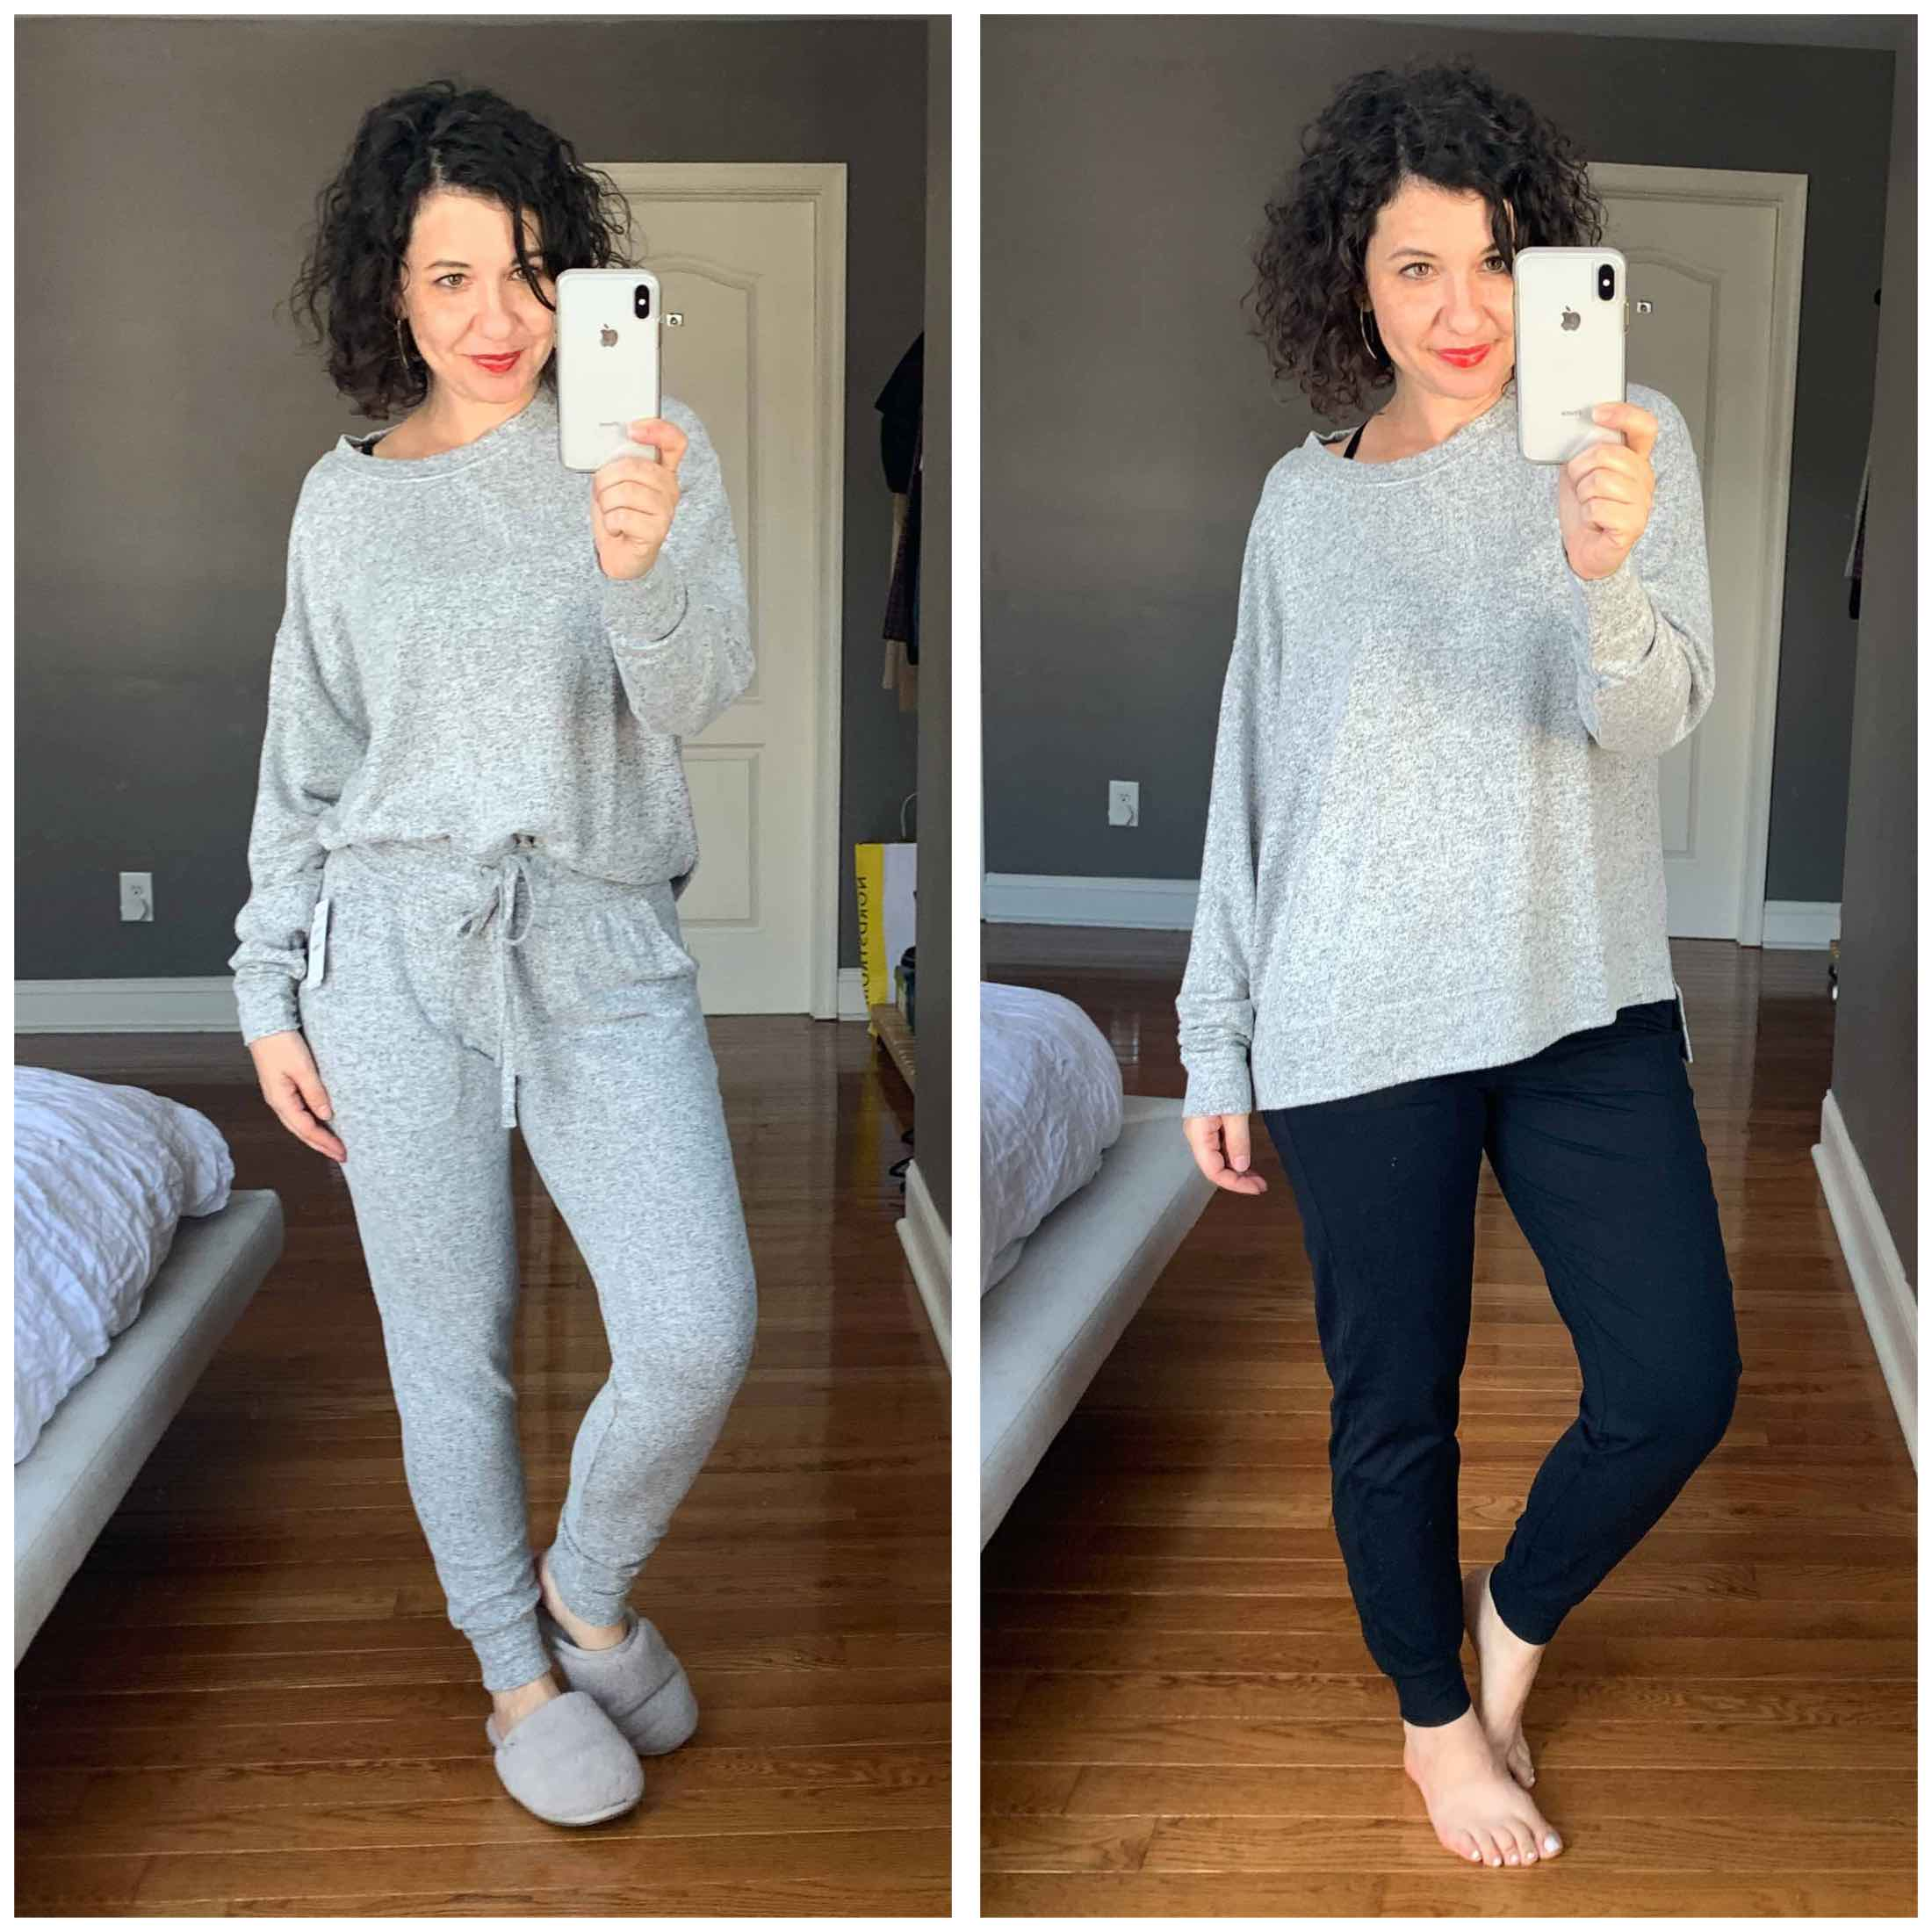 Cozy, luxe cardigans (think Vince); stylish comfort shoes (hey, EILEEN FISHER); cute tops (hi, FRAME) - #NSale #DressingRoomSelfies are here!